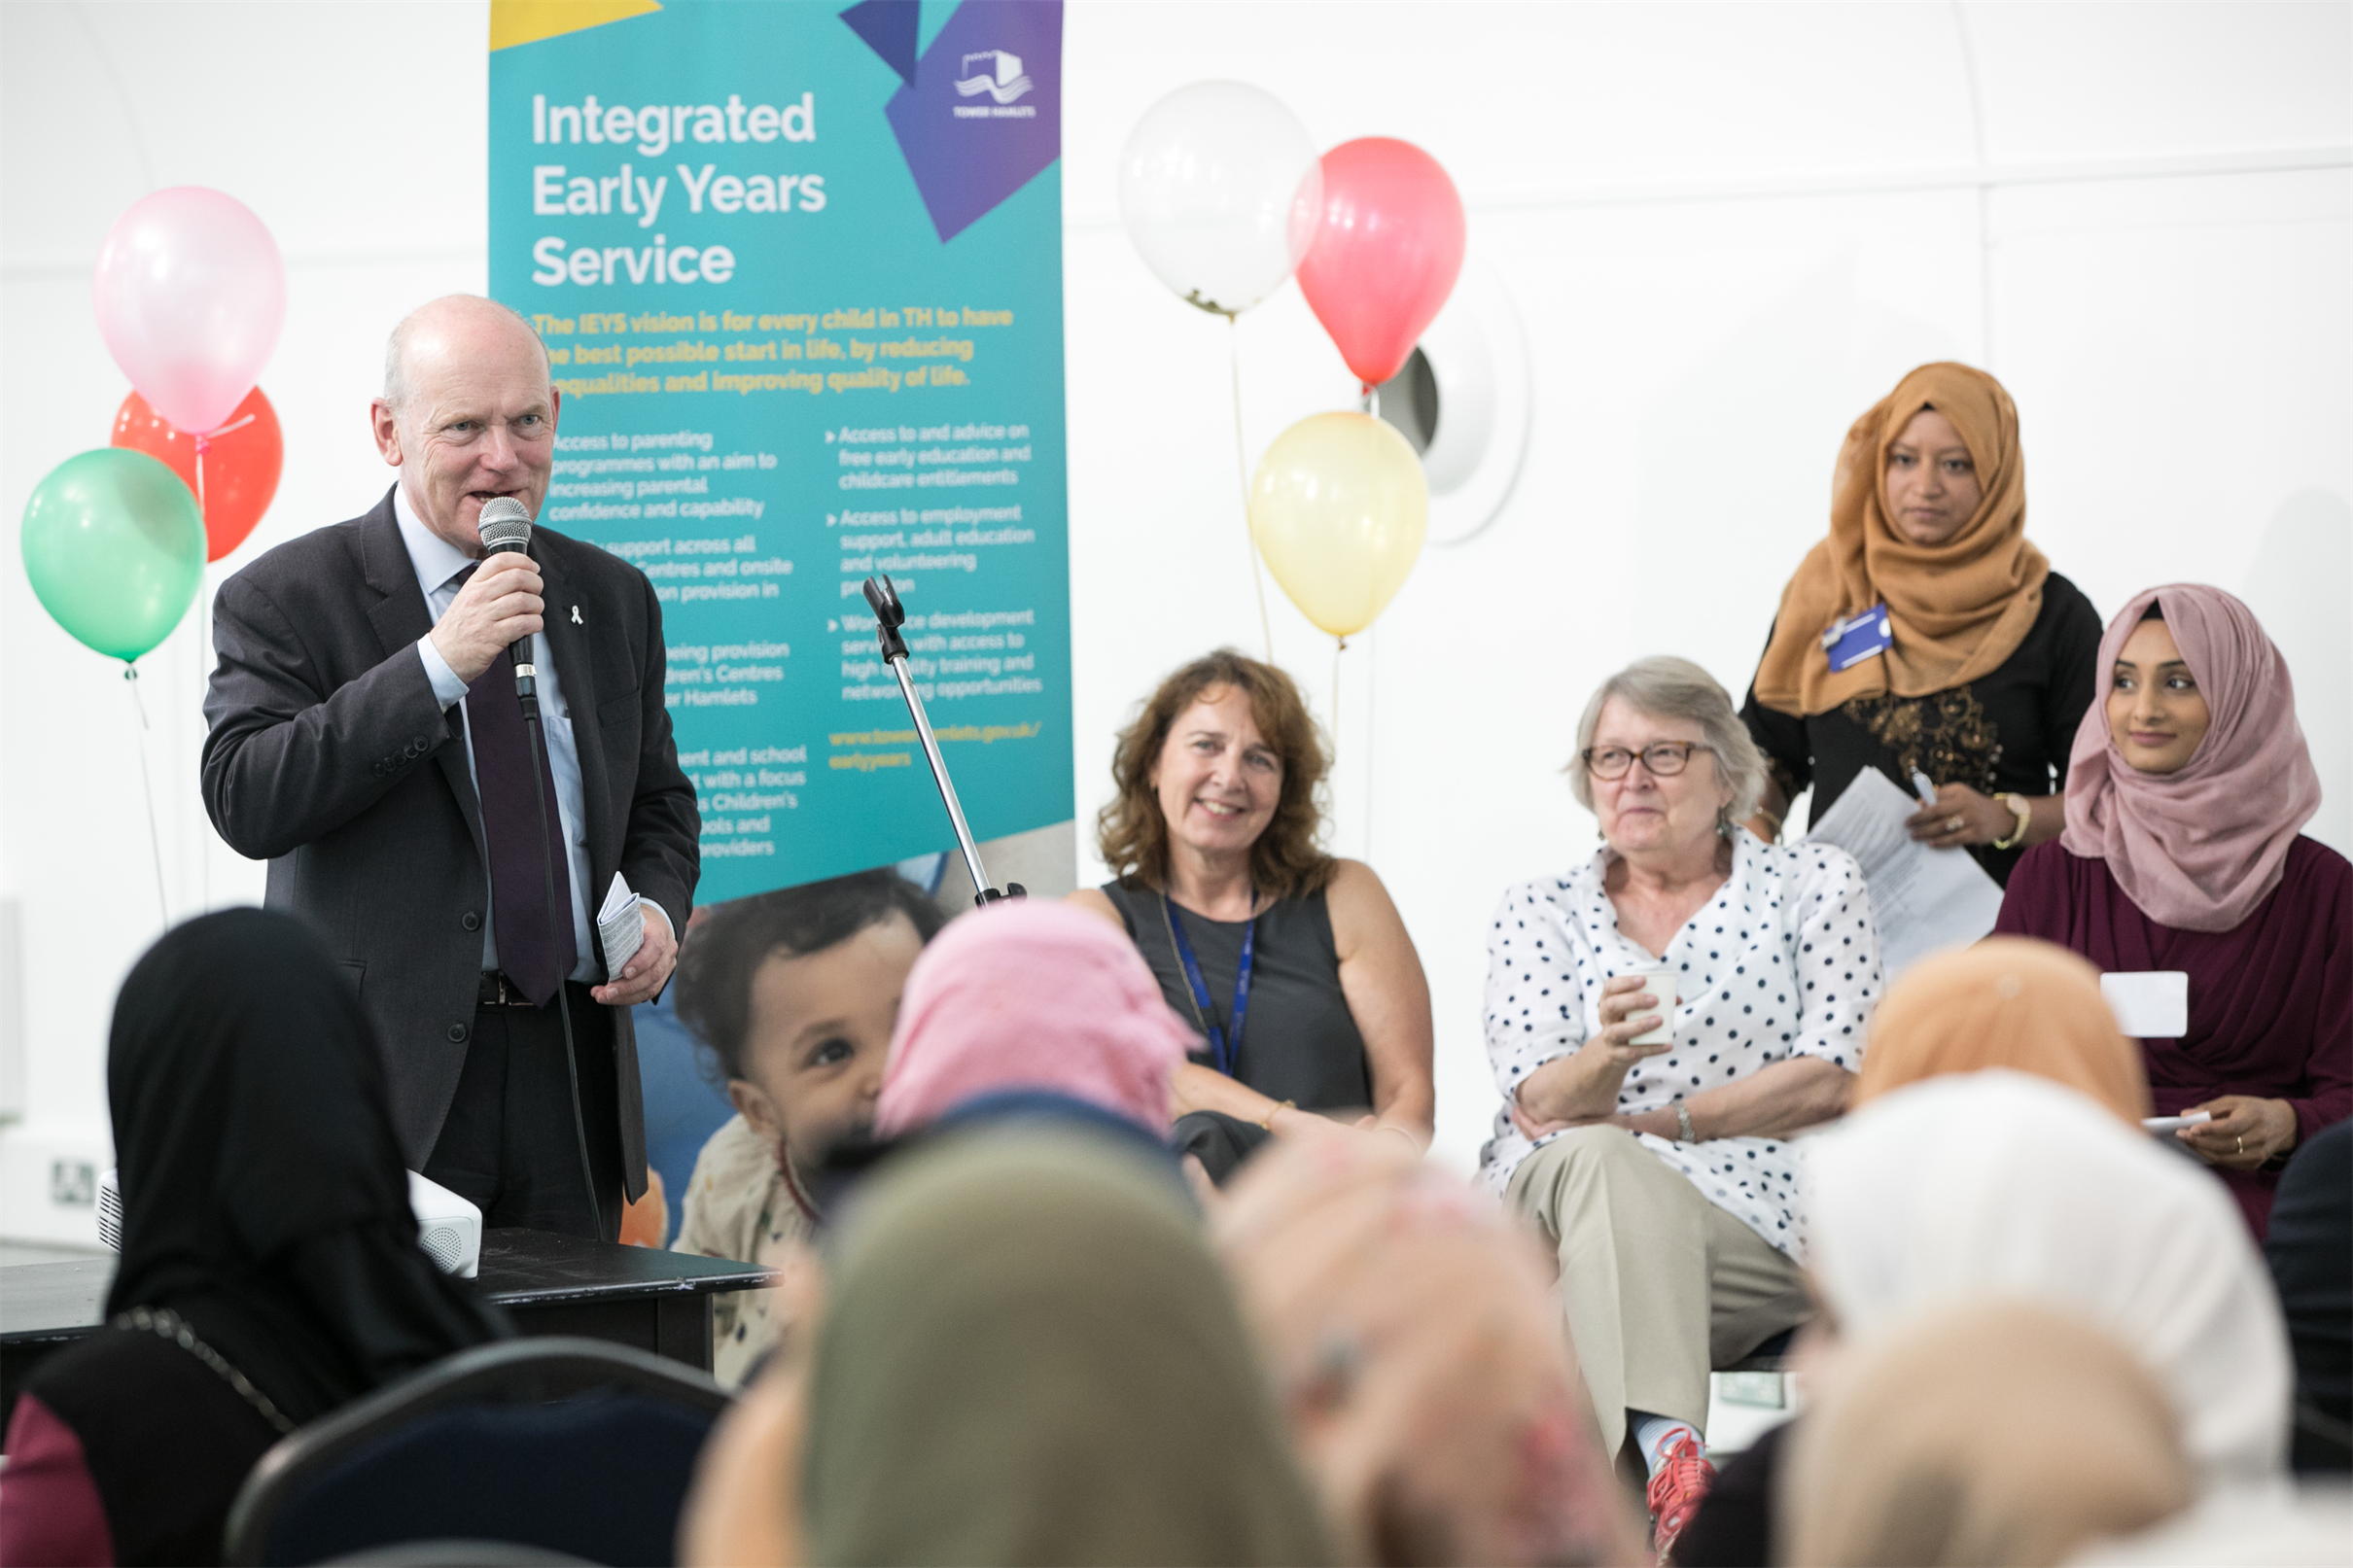 Childrens Centre Awards -22 mayor John Biggs